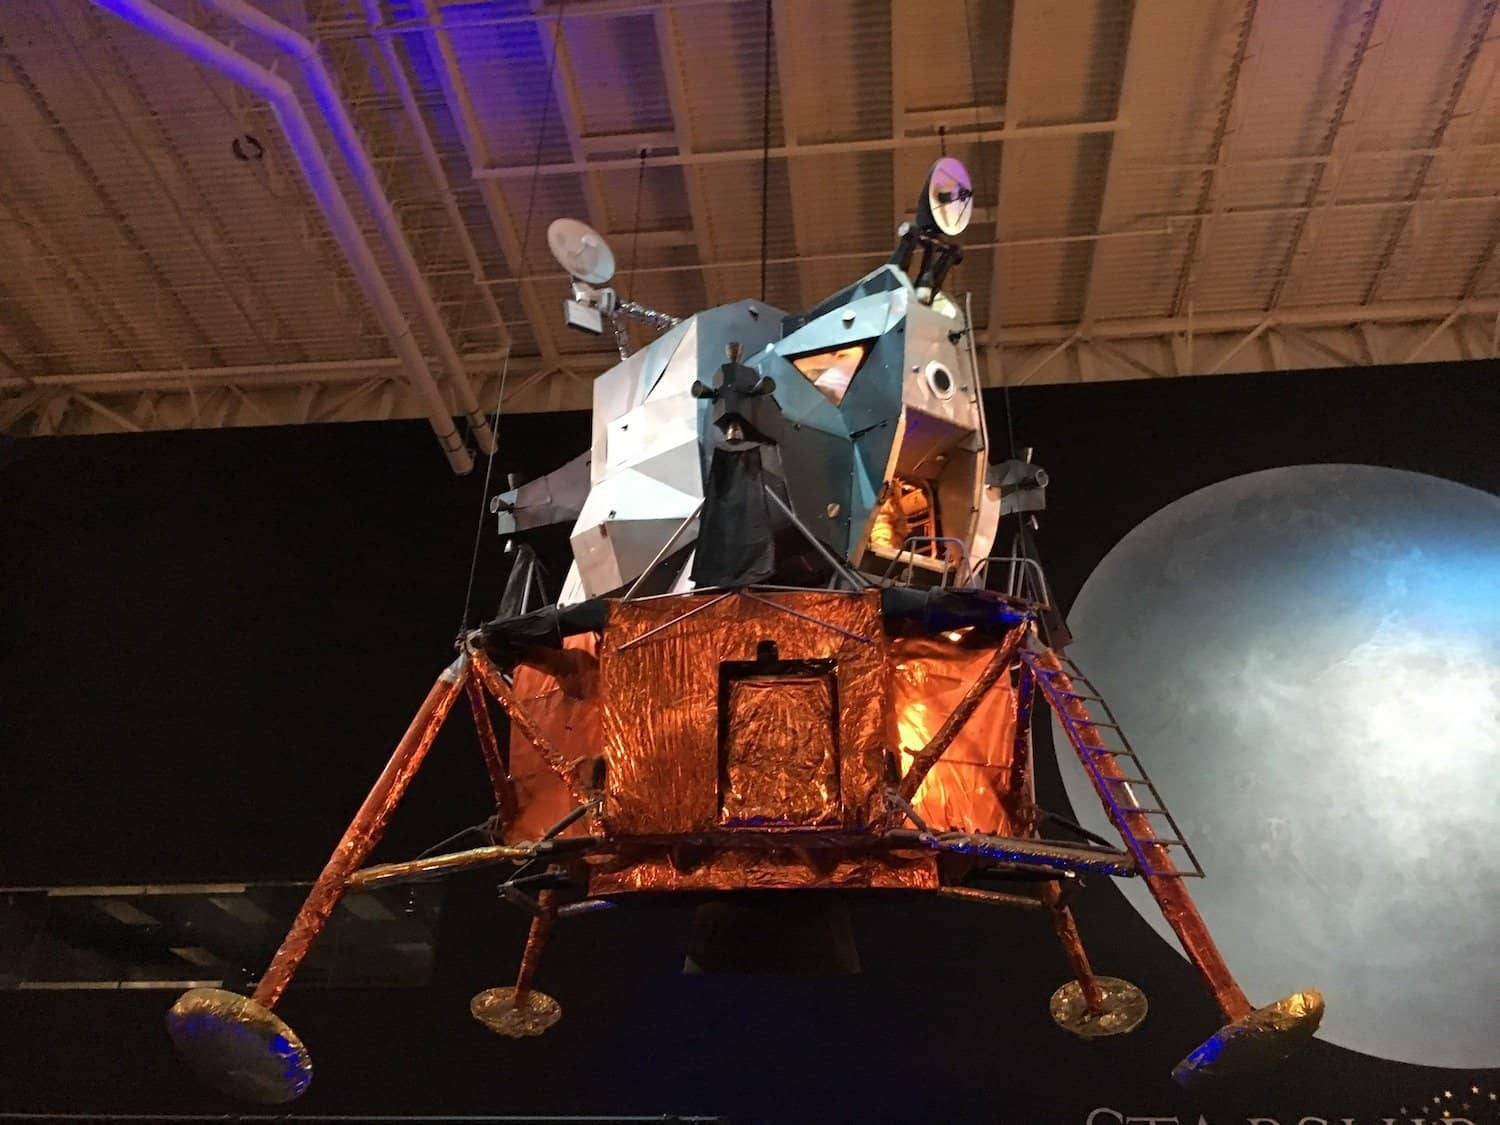 Lander at Space Center Houston